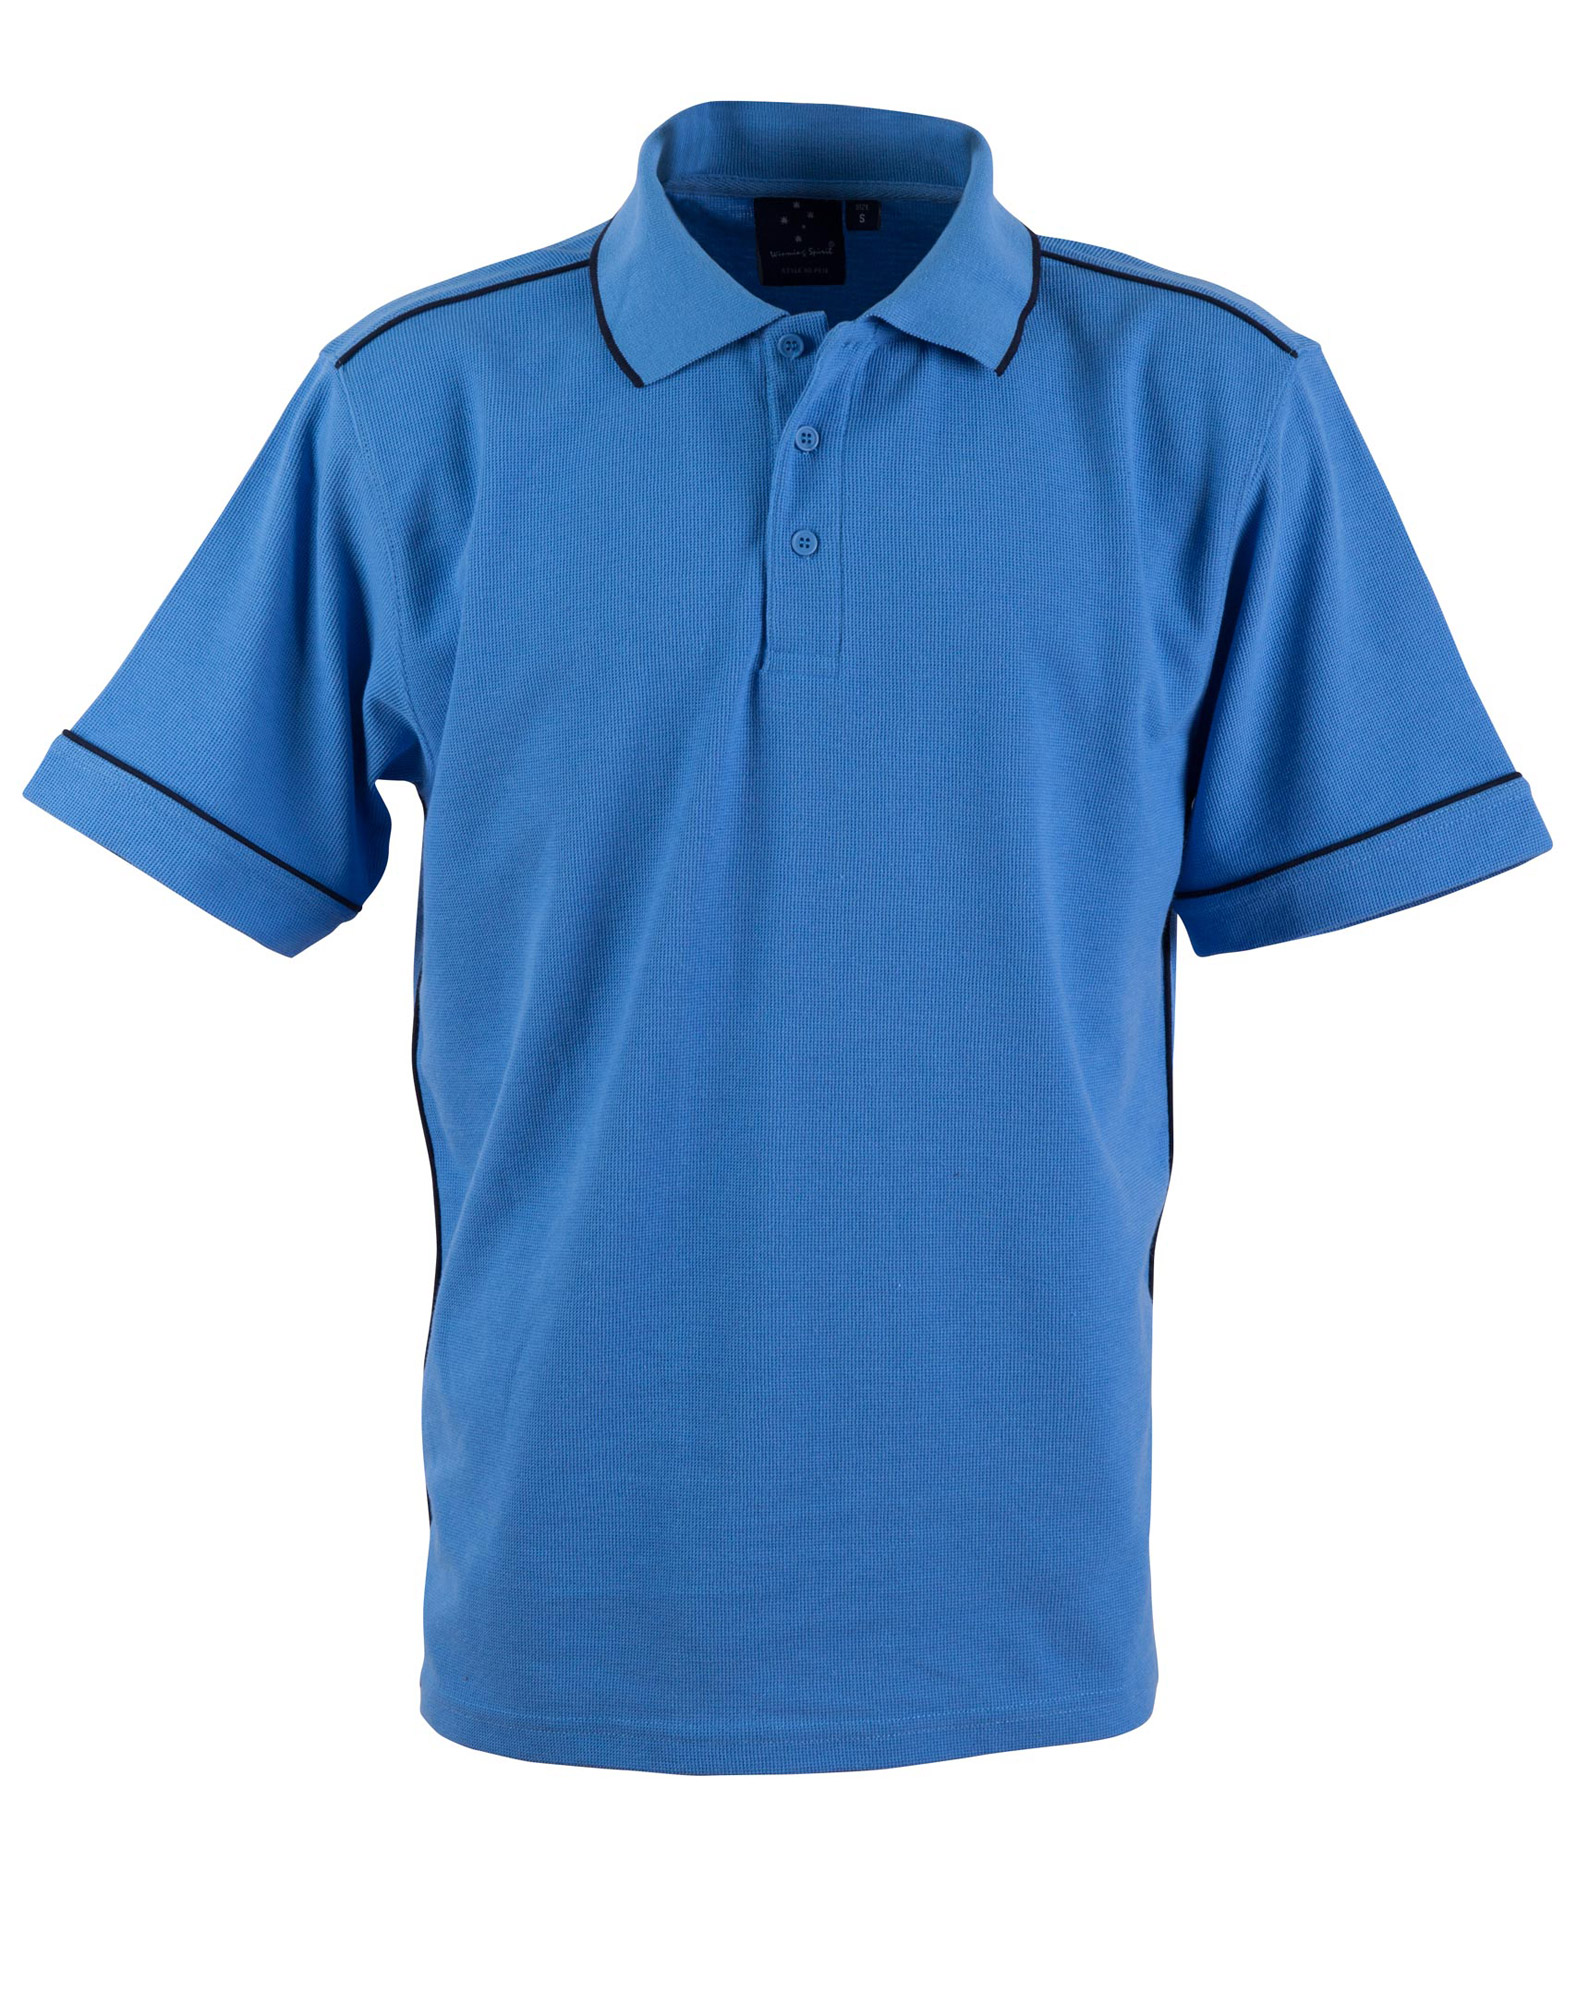 https://s3-ap-southeast-1.amazonaws.com/ws-imgs/POLOSHIRTS/PS18_Skyblue.Navy_Front_l.jpg